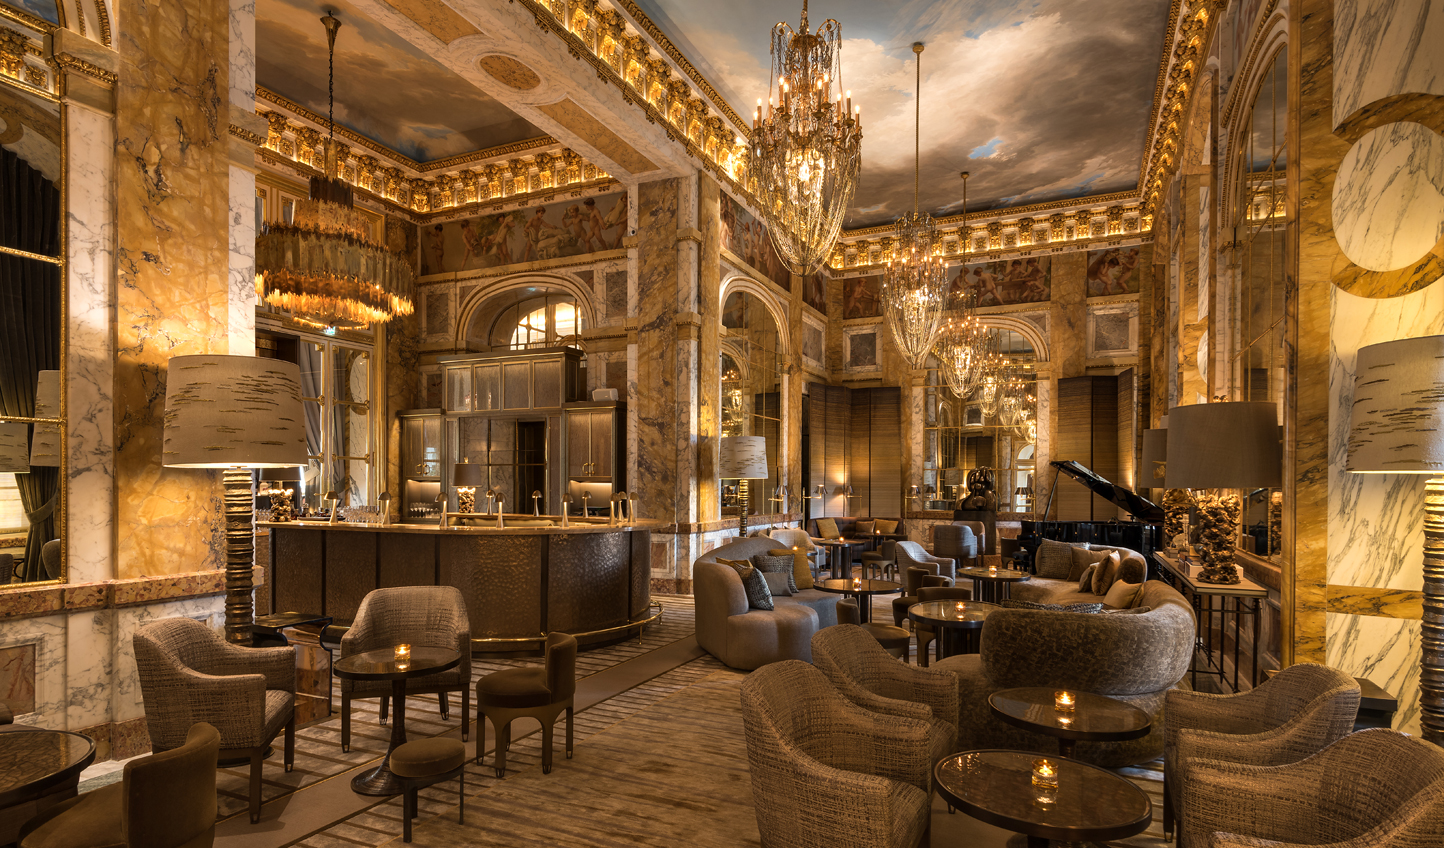 Step into Parisian grandeur at Les Ambassadeurs Bar at Hotel de Crillon